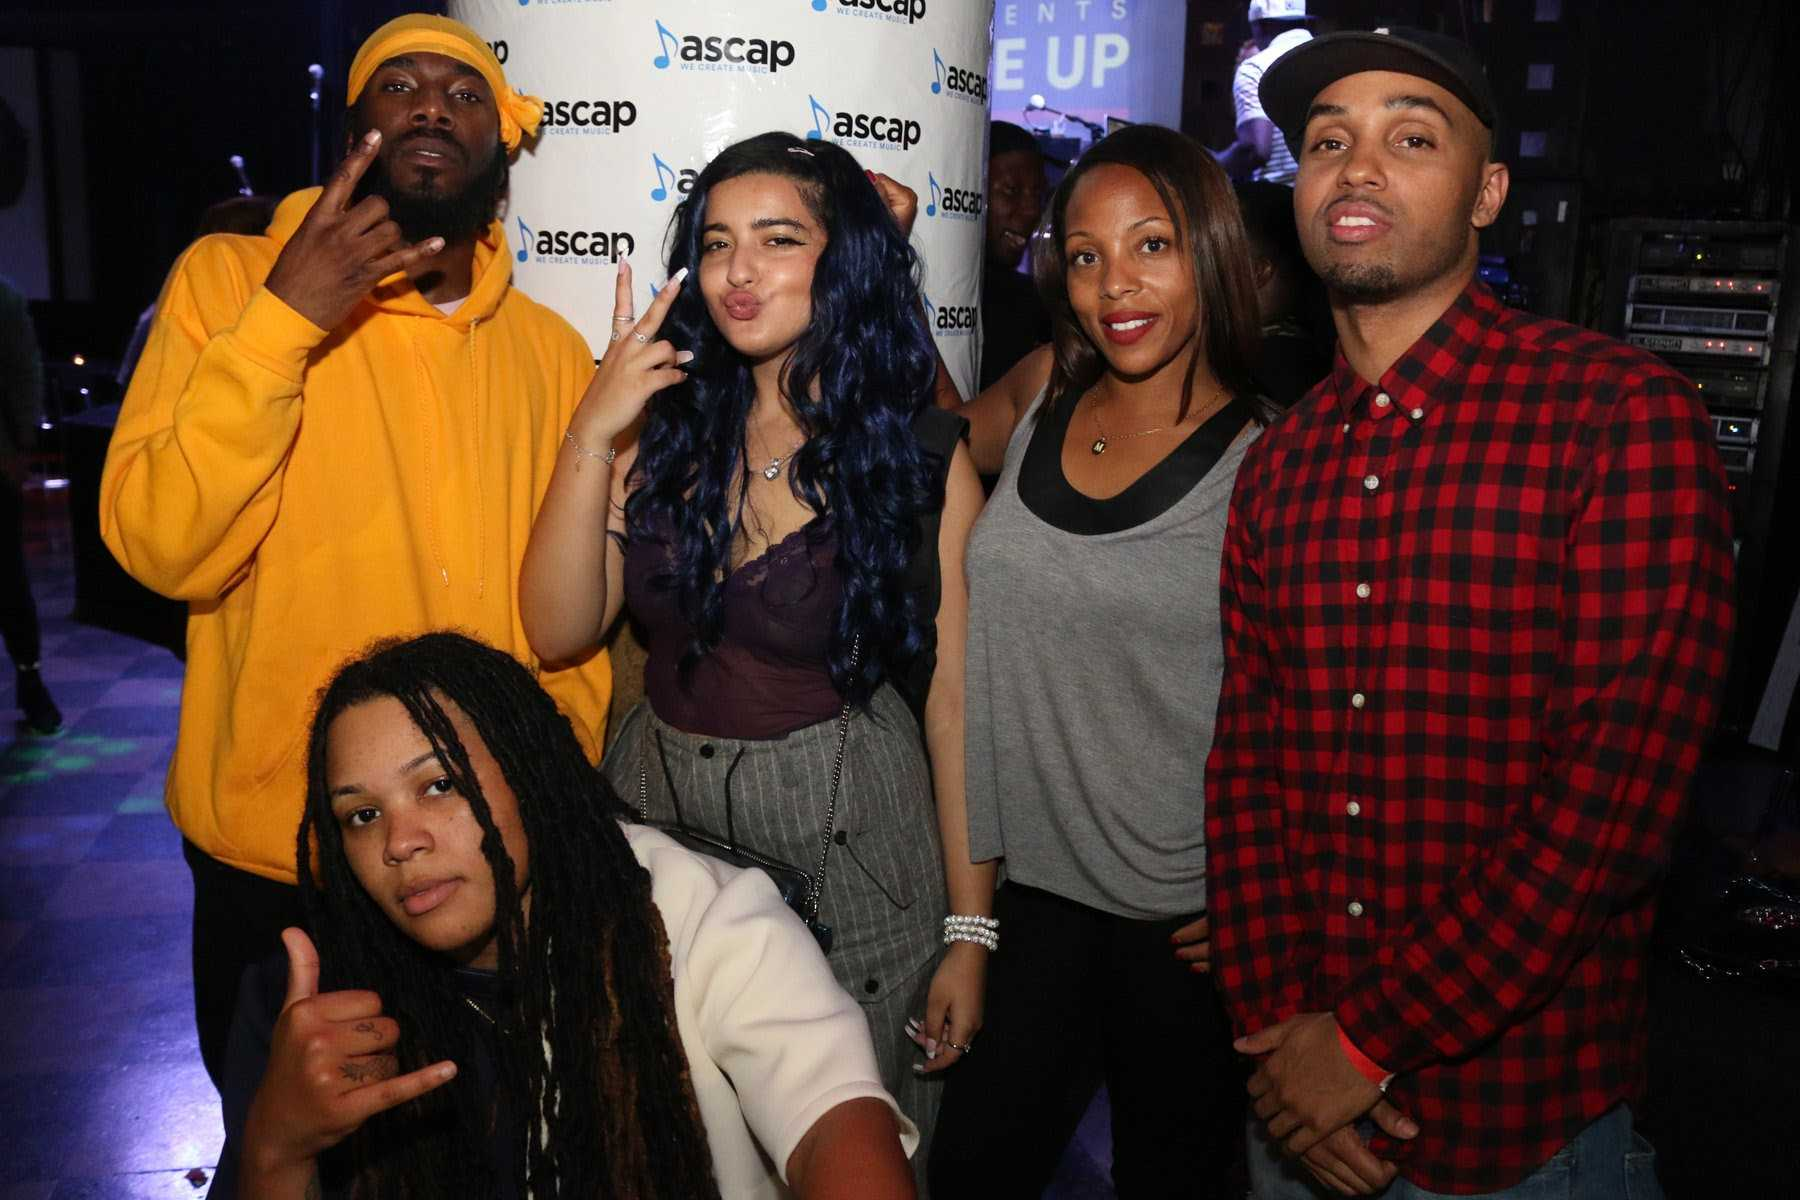 """Liana Banks, Dougie F Performed at ASCAP's """"ON THE COME UP"""" SHOWCASE IN NYC AT SOB'S"""